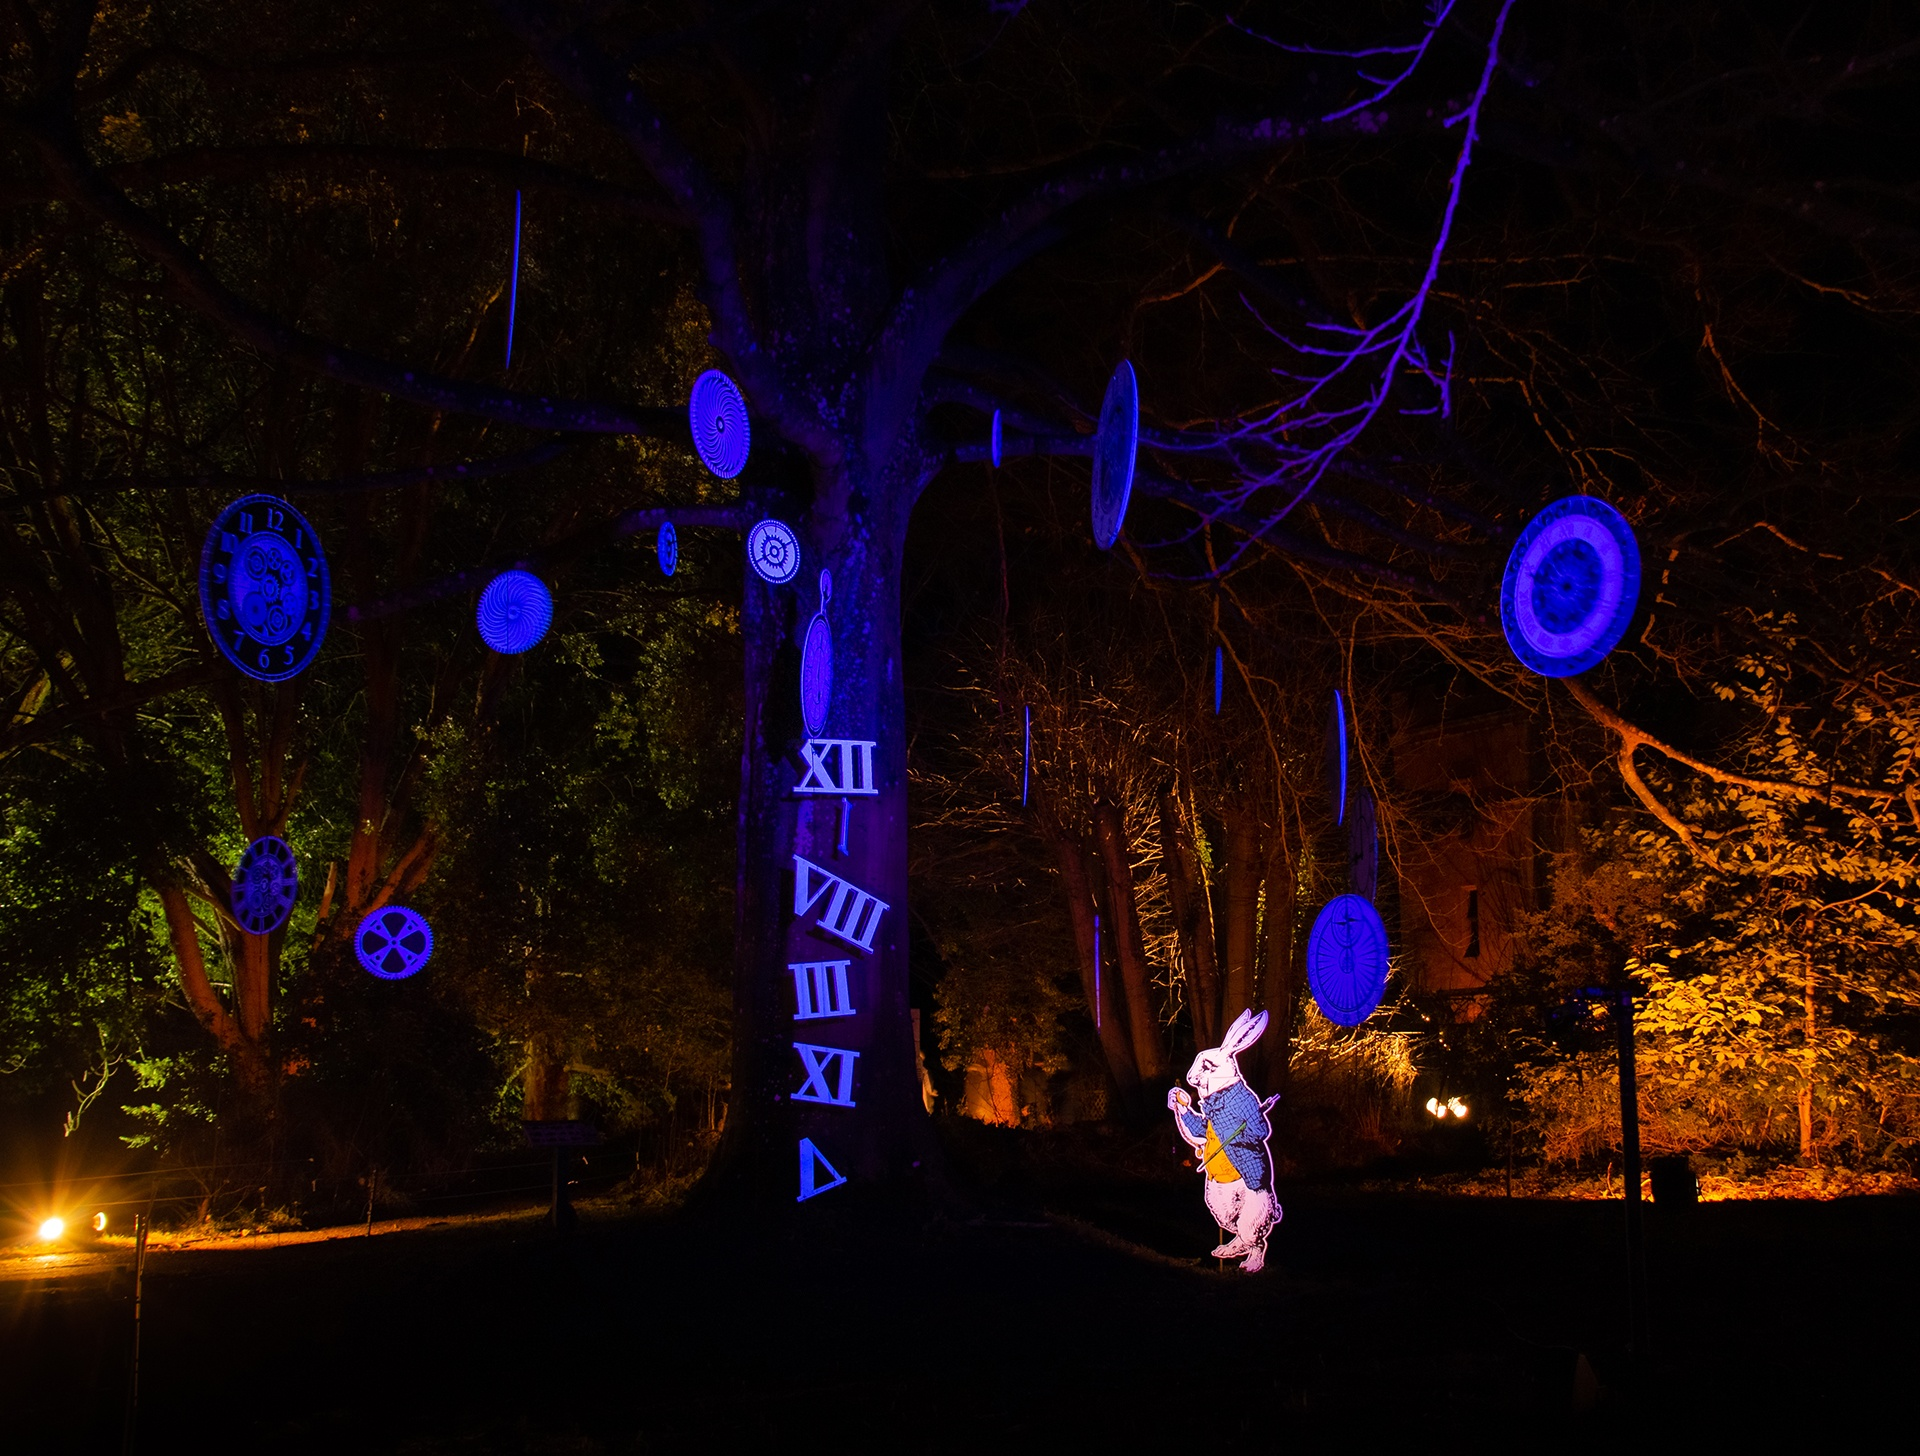 A lit up tree with clocks attached to it and a white rabbit in a suit looking at it at the Sudeley Castle Spectacle of Light